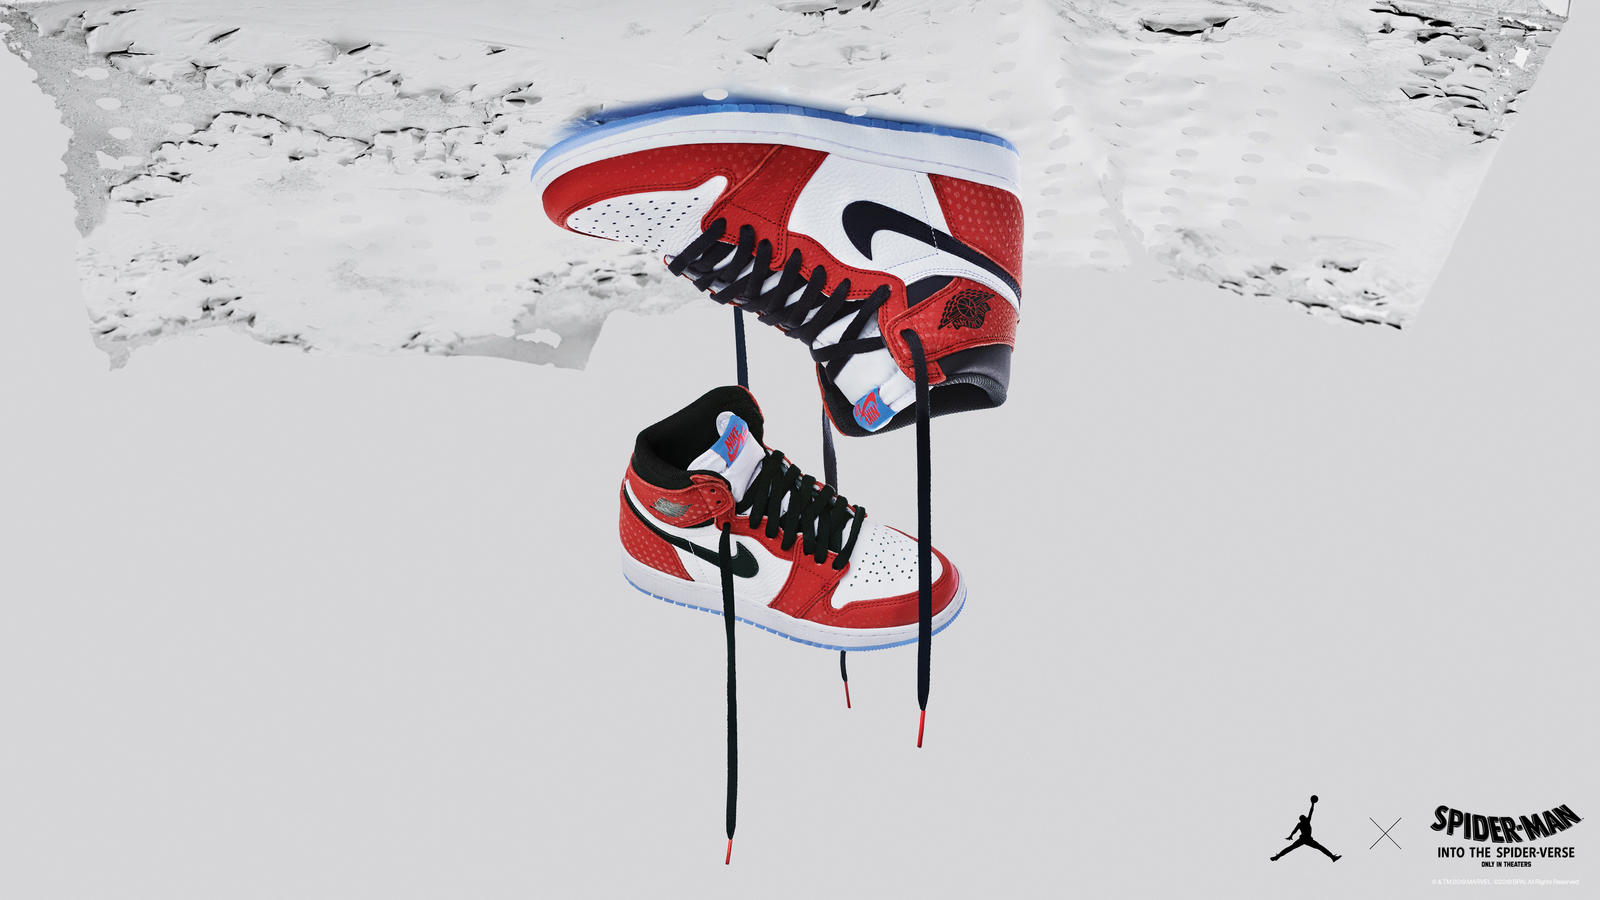 Spider-Man Into The Spider-Verse is a sneaker movie with the Air Jordan 1 Retro